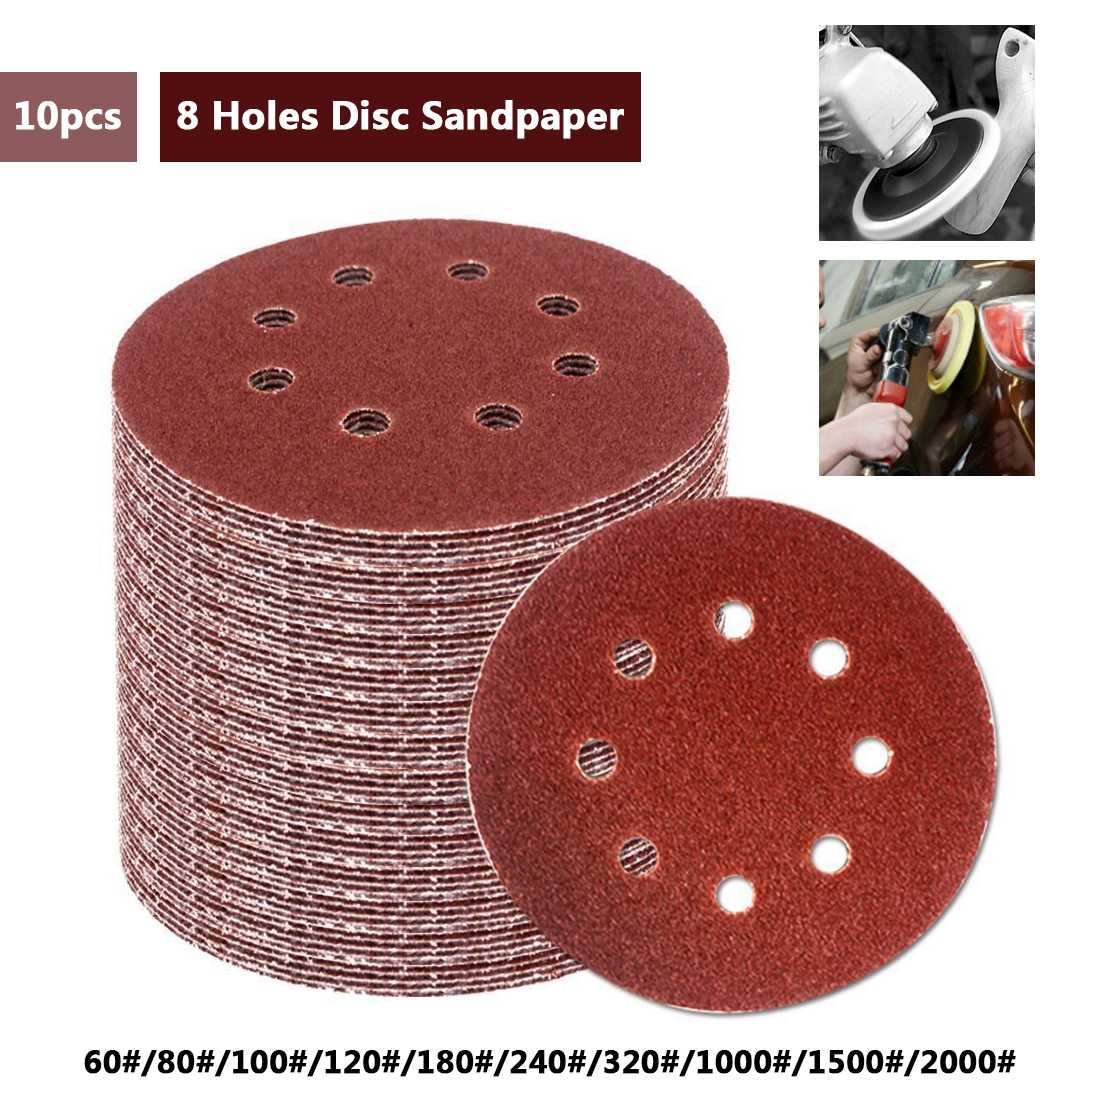 10pcs 5 Inch 125mm Round Sandpaper Eight Hole Disk Sand Sheets Grit 60-2000 Hook And Loop Sanding Disc Polish